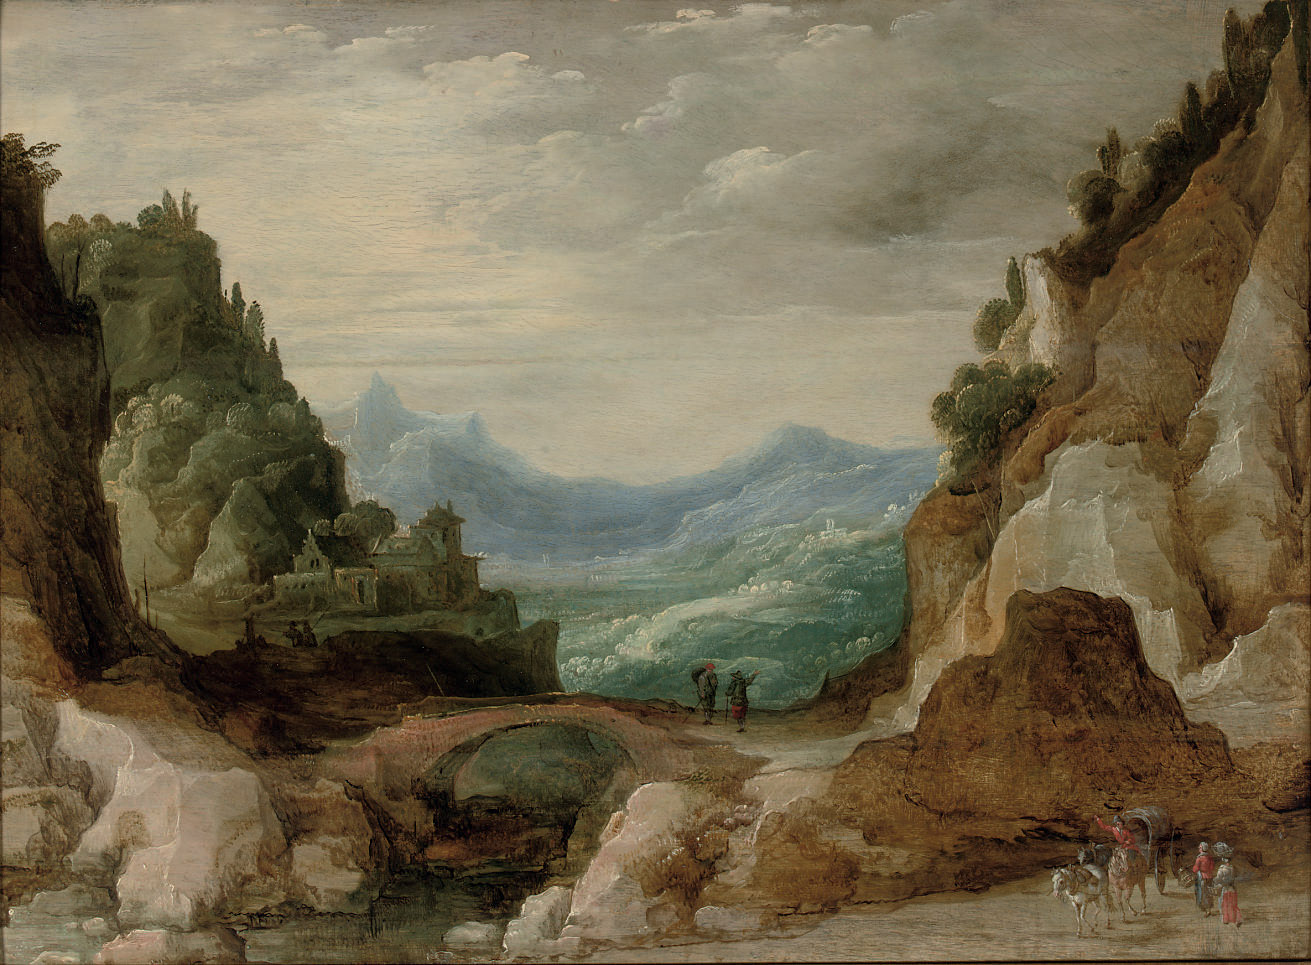 An extensive rocky landscape with travellers by a bridge